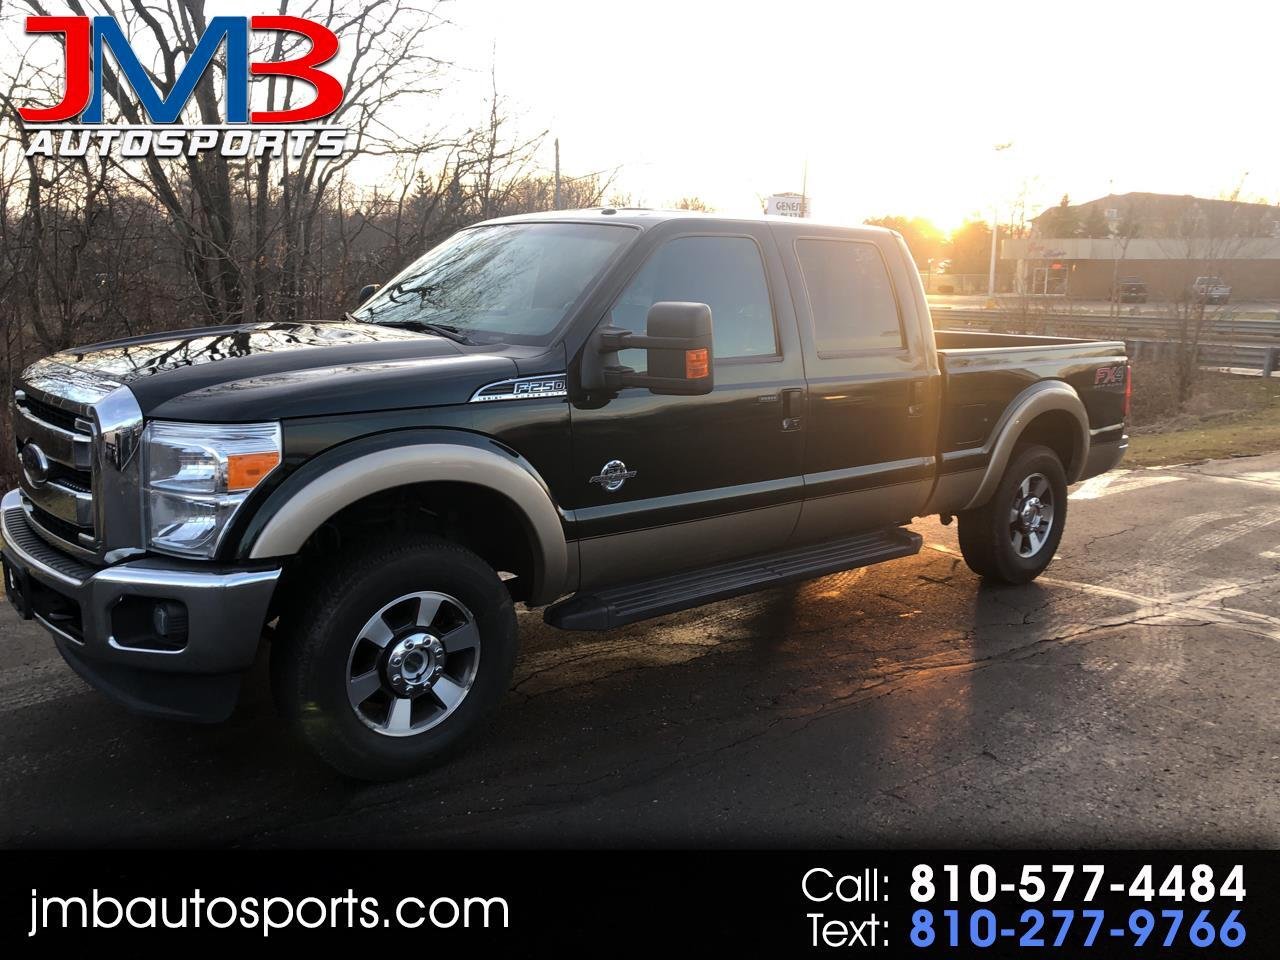 Used Tires Flint Mi >> Used 2014 Ford F 250 Sd Lariat Crew Cab Short Bed 4wd For